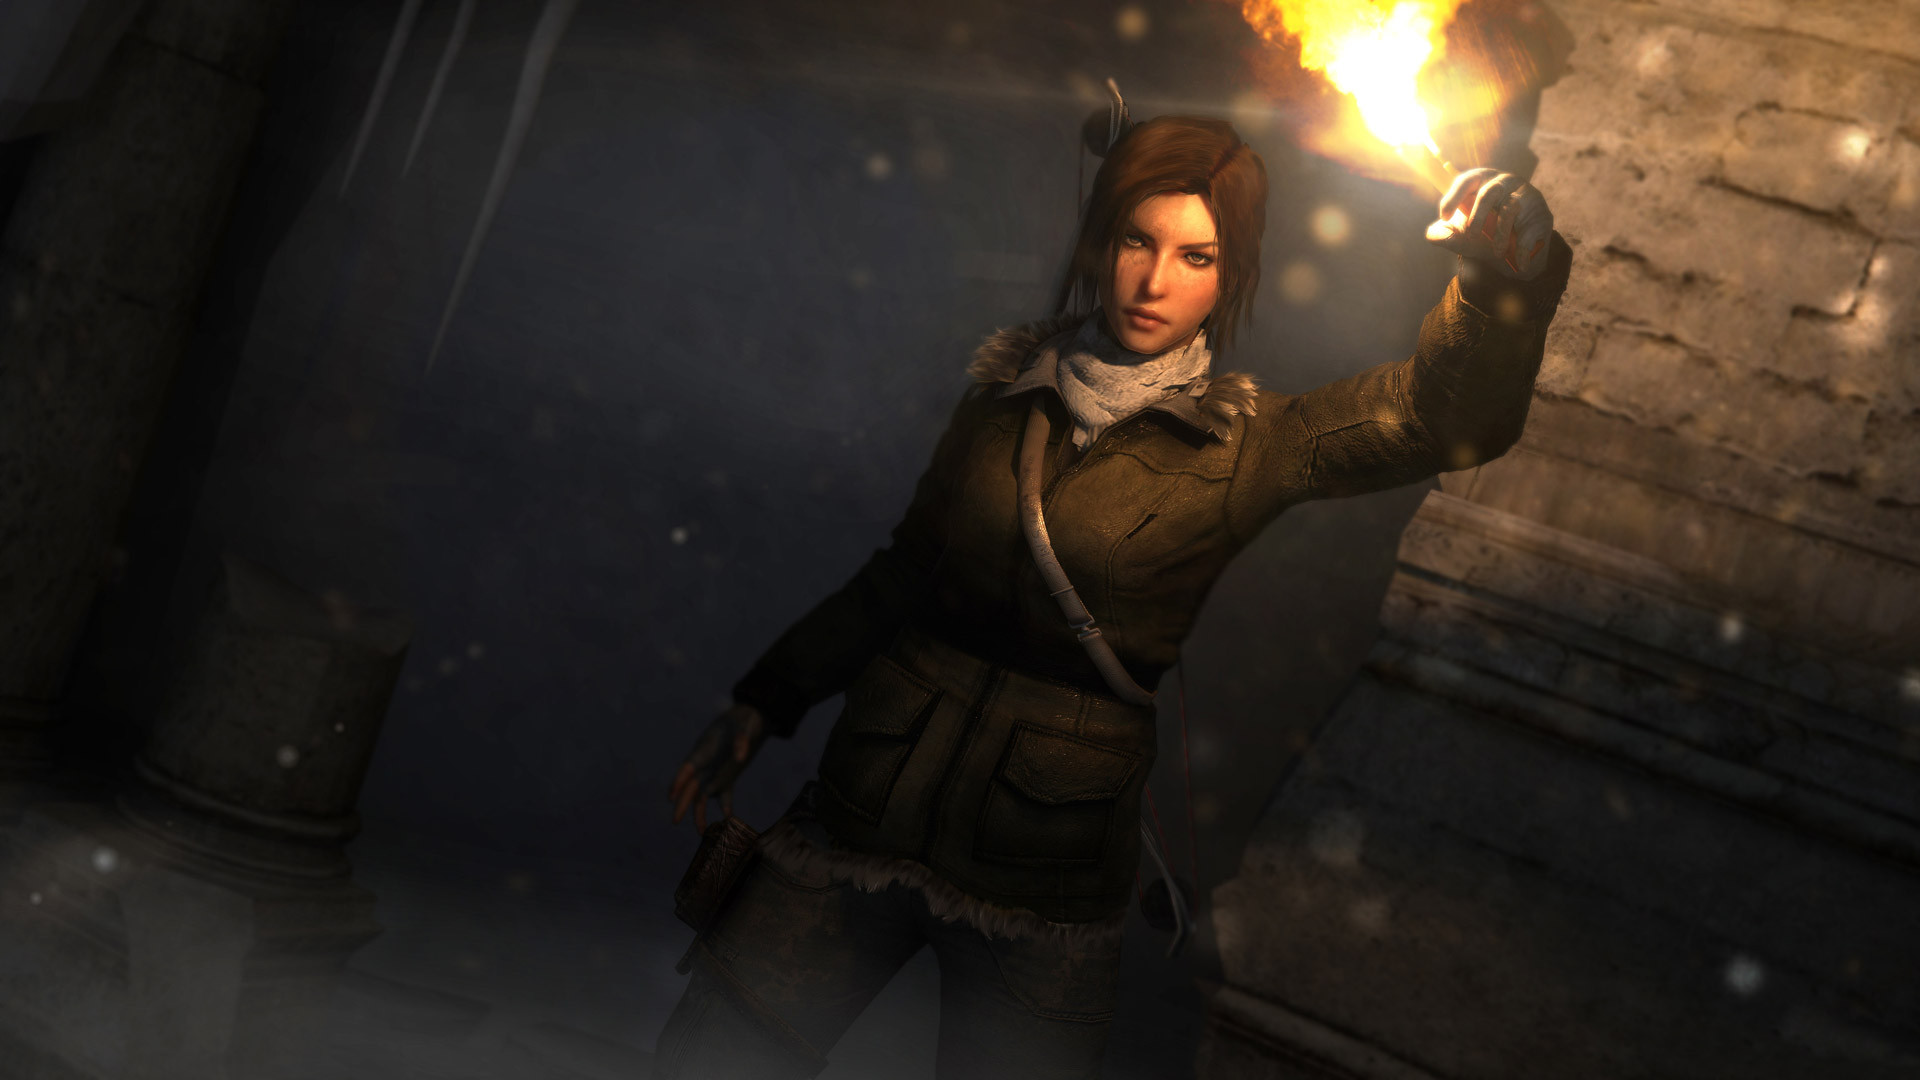 Free Rise of the Tomb Raider Wallpaper in 1920x1080